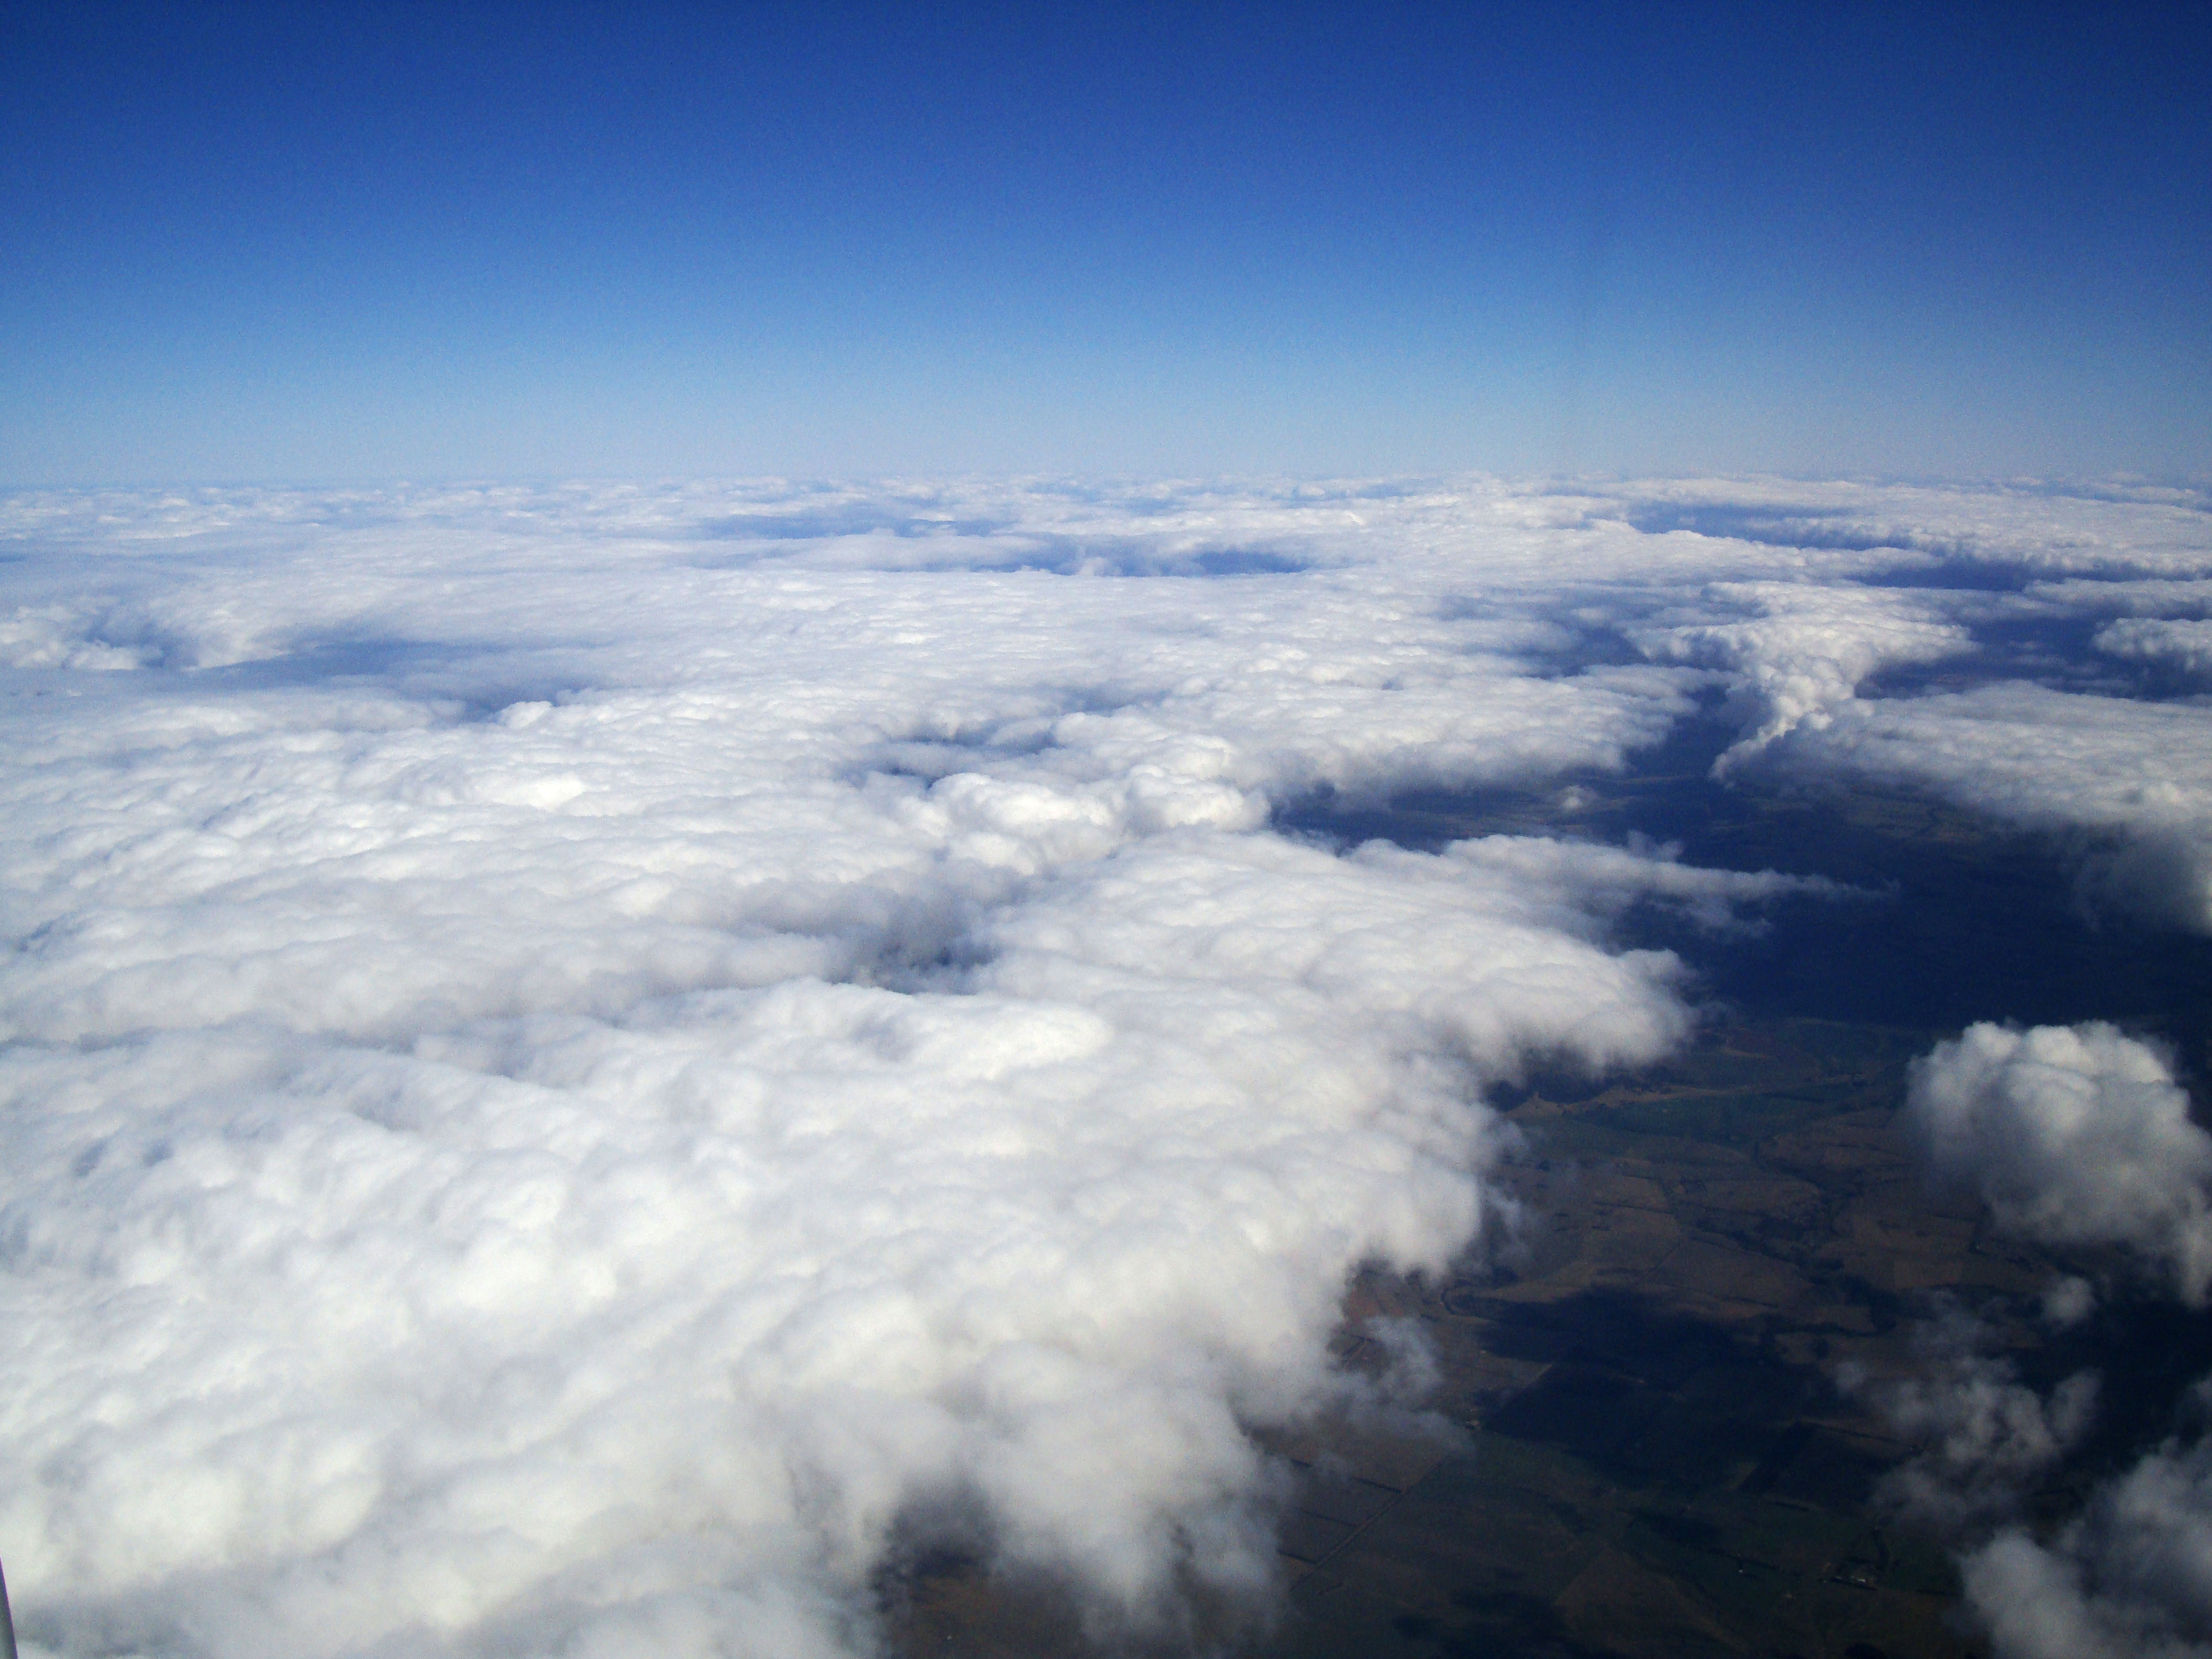 Textures Clouds Formations Sky Storms Weather Phenomena Aerial Views 04